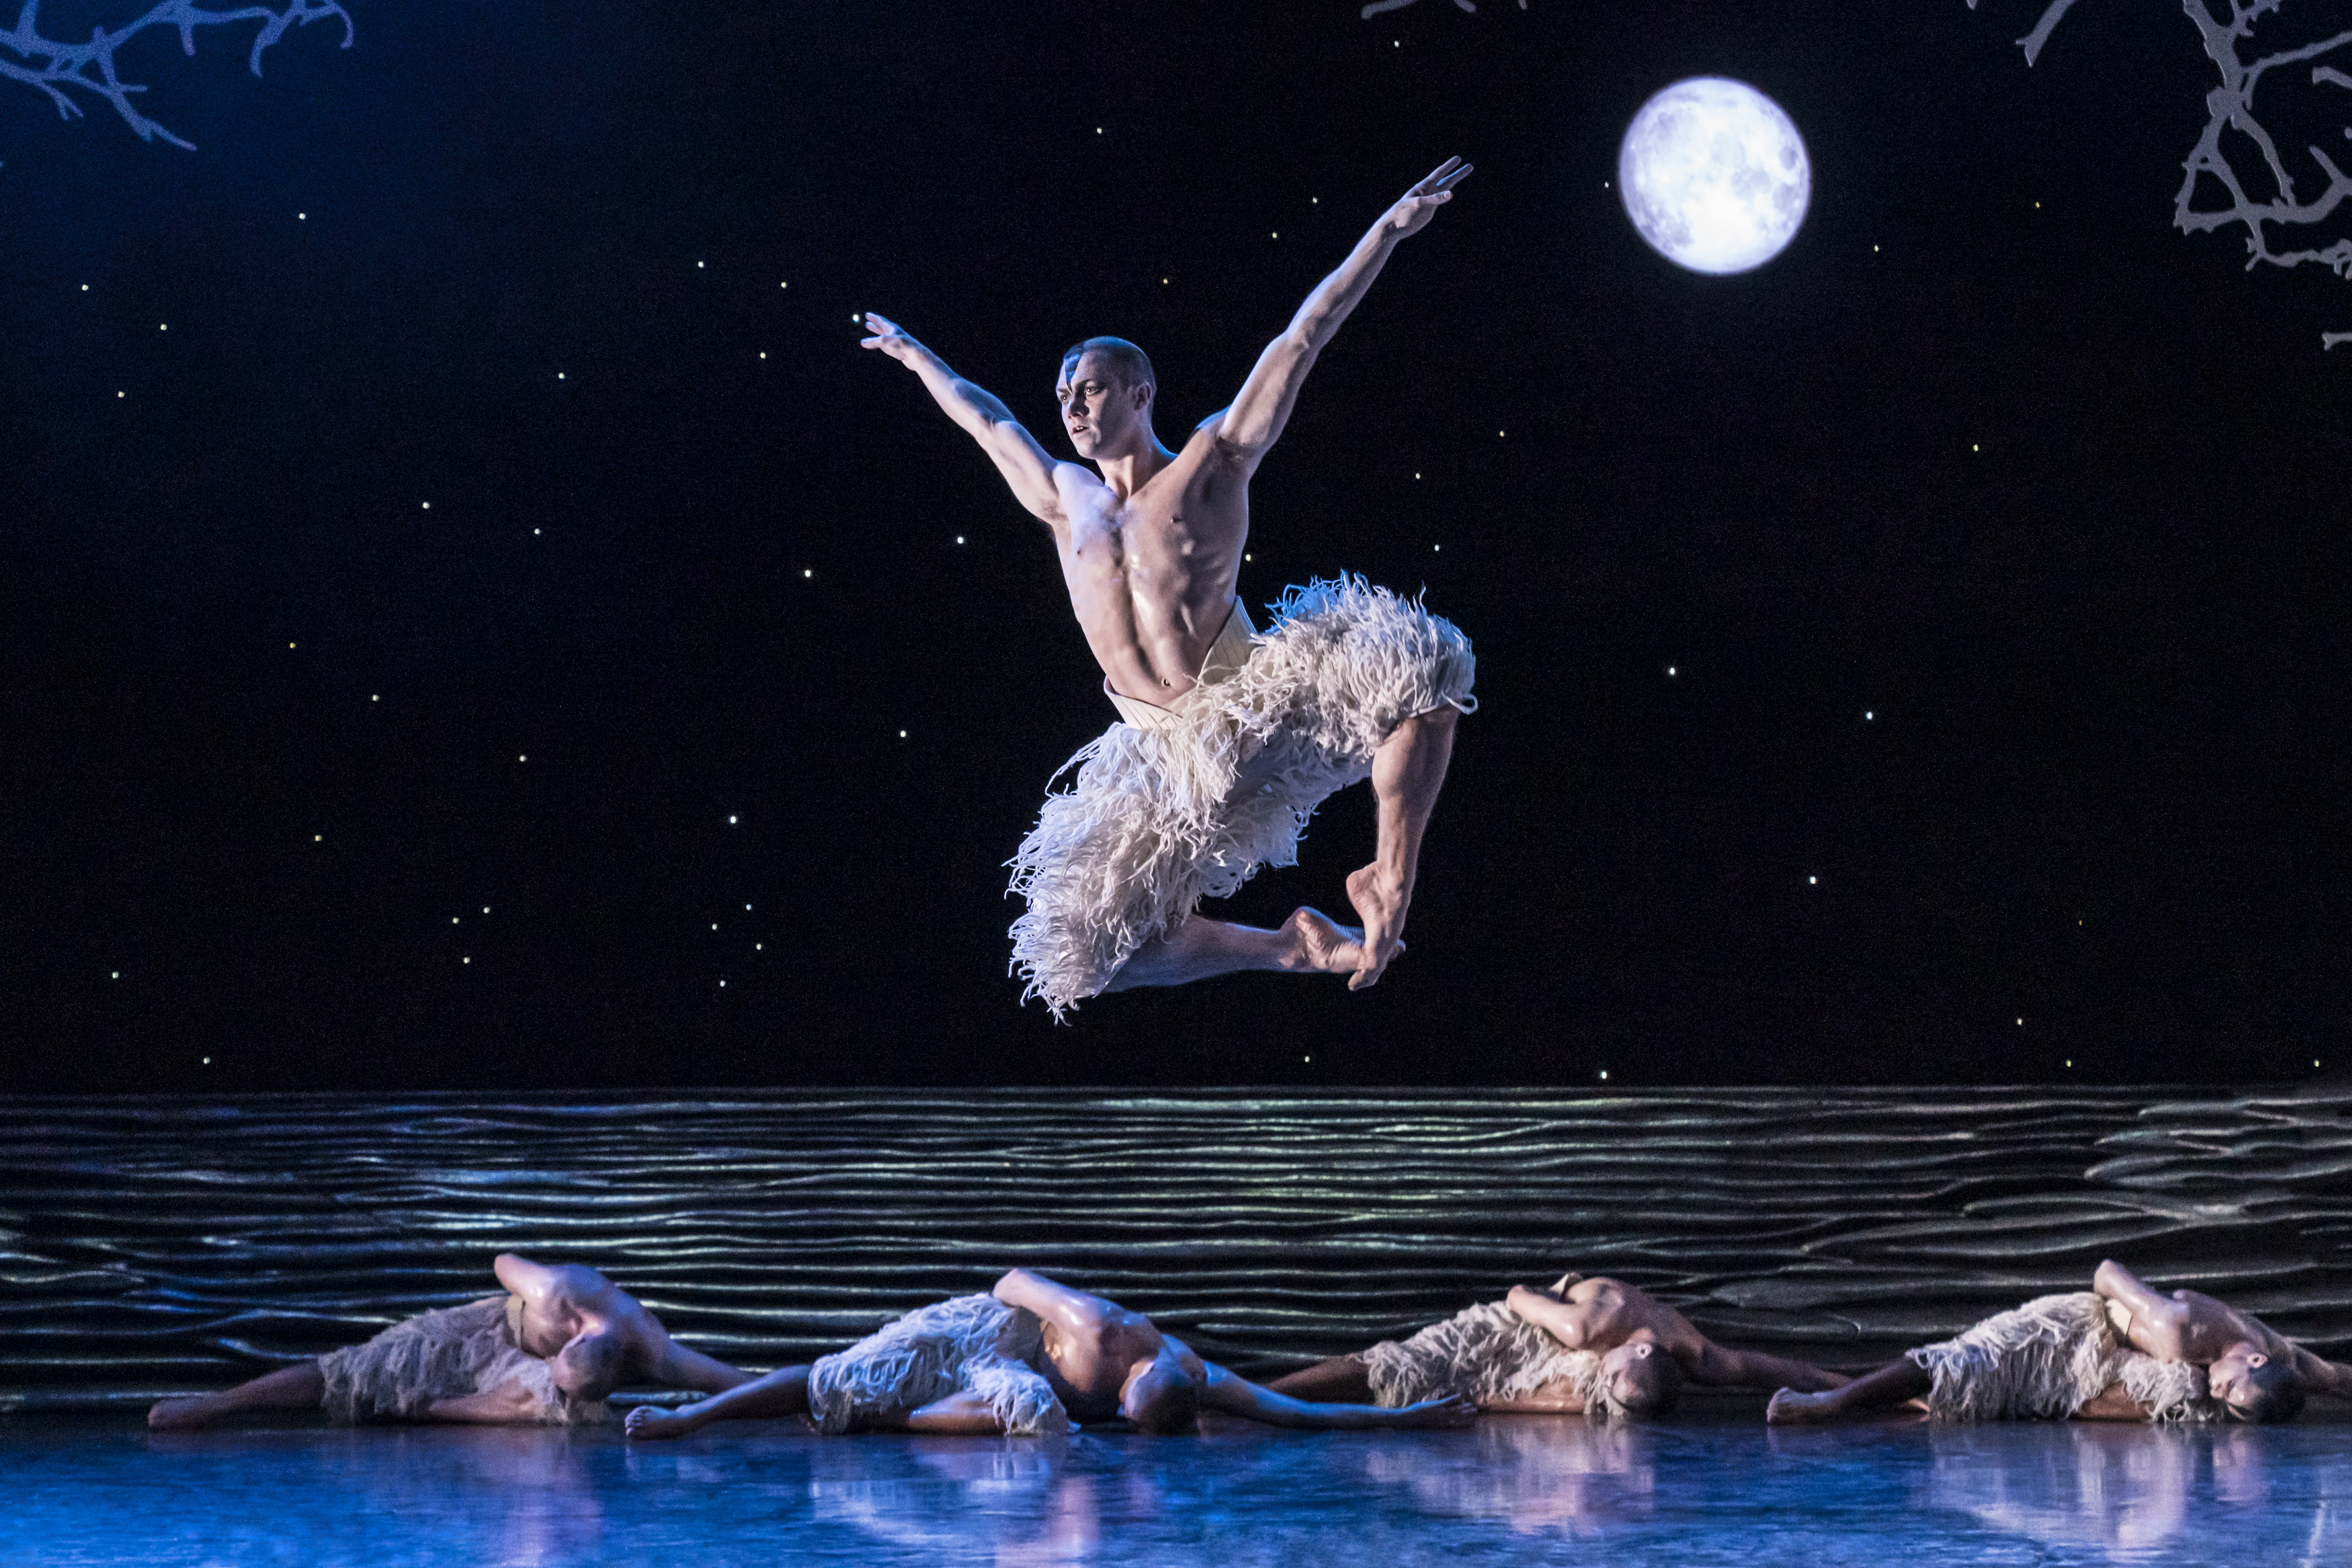 """Onstage This Week: NYCB Opens Its Winter Season, Matthew Bourne """"Swan Lake"""" in DC, and More!"""